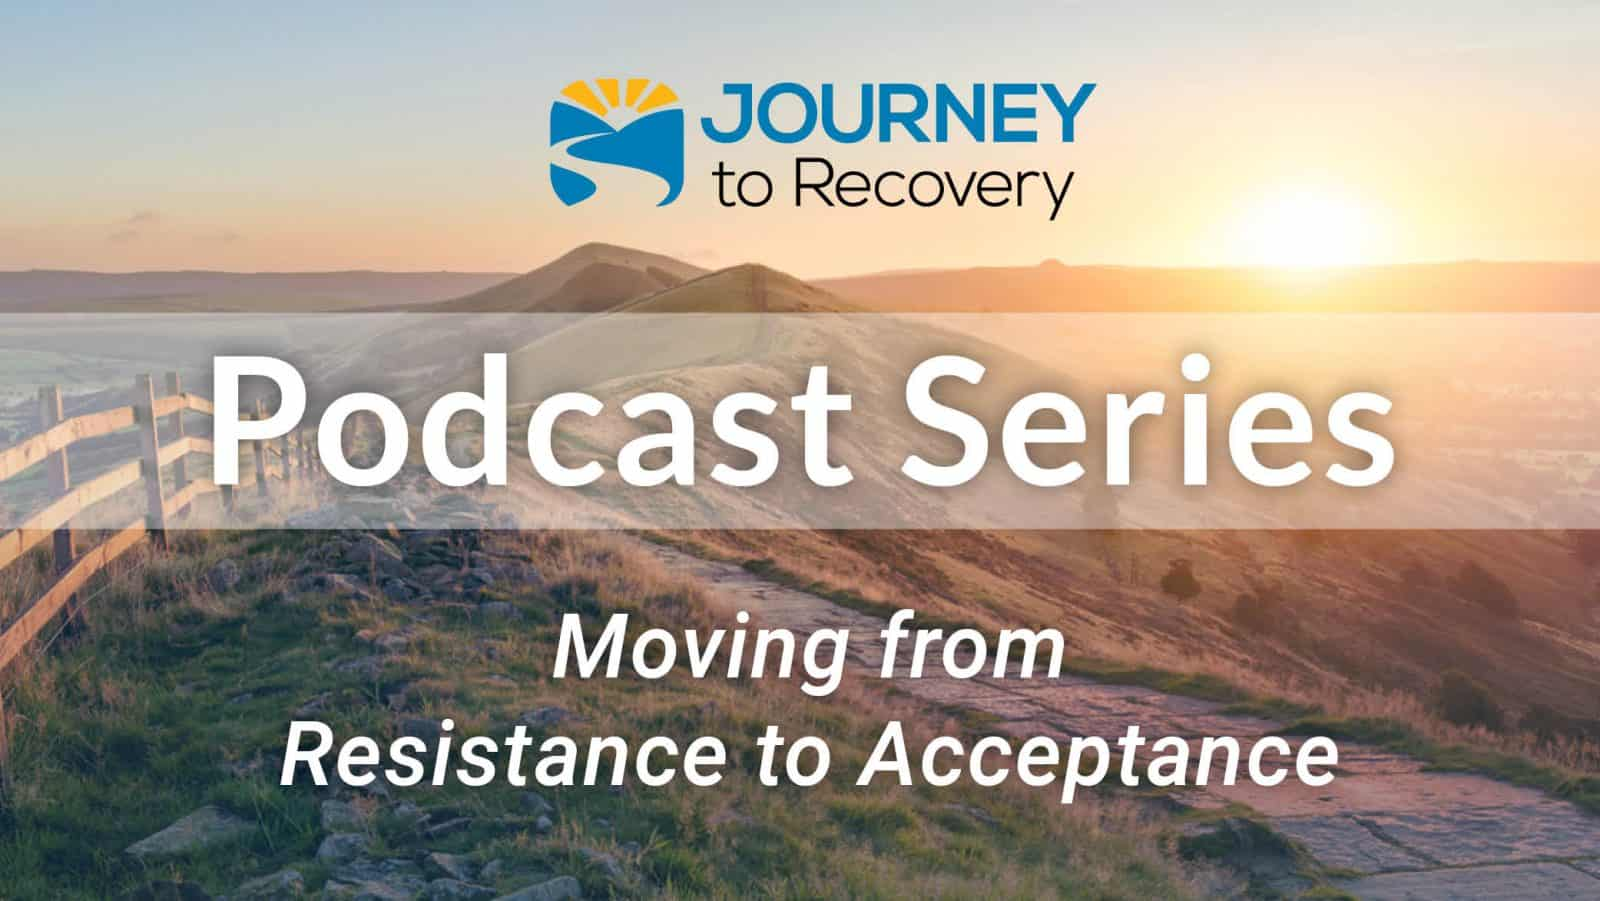 Moving from Resistance to Acceptance